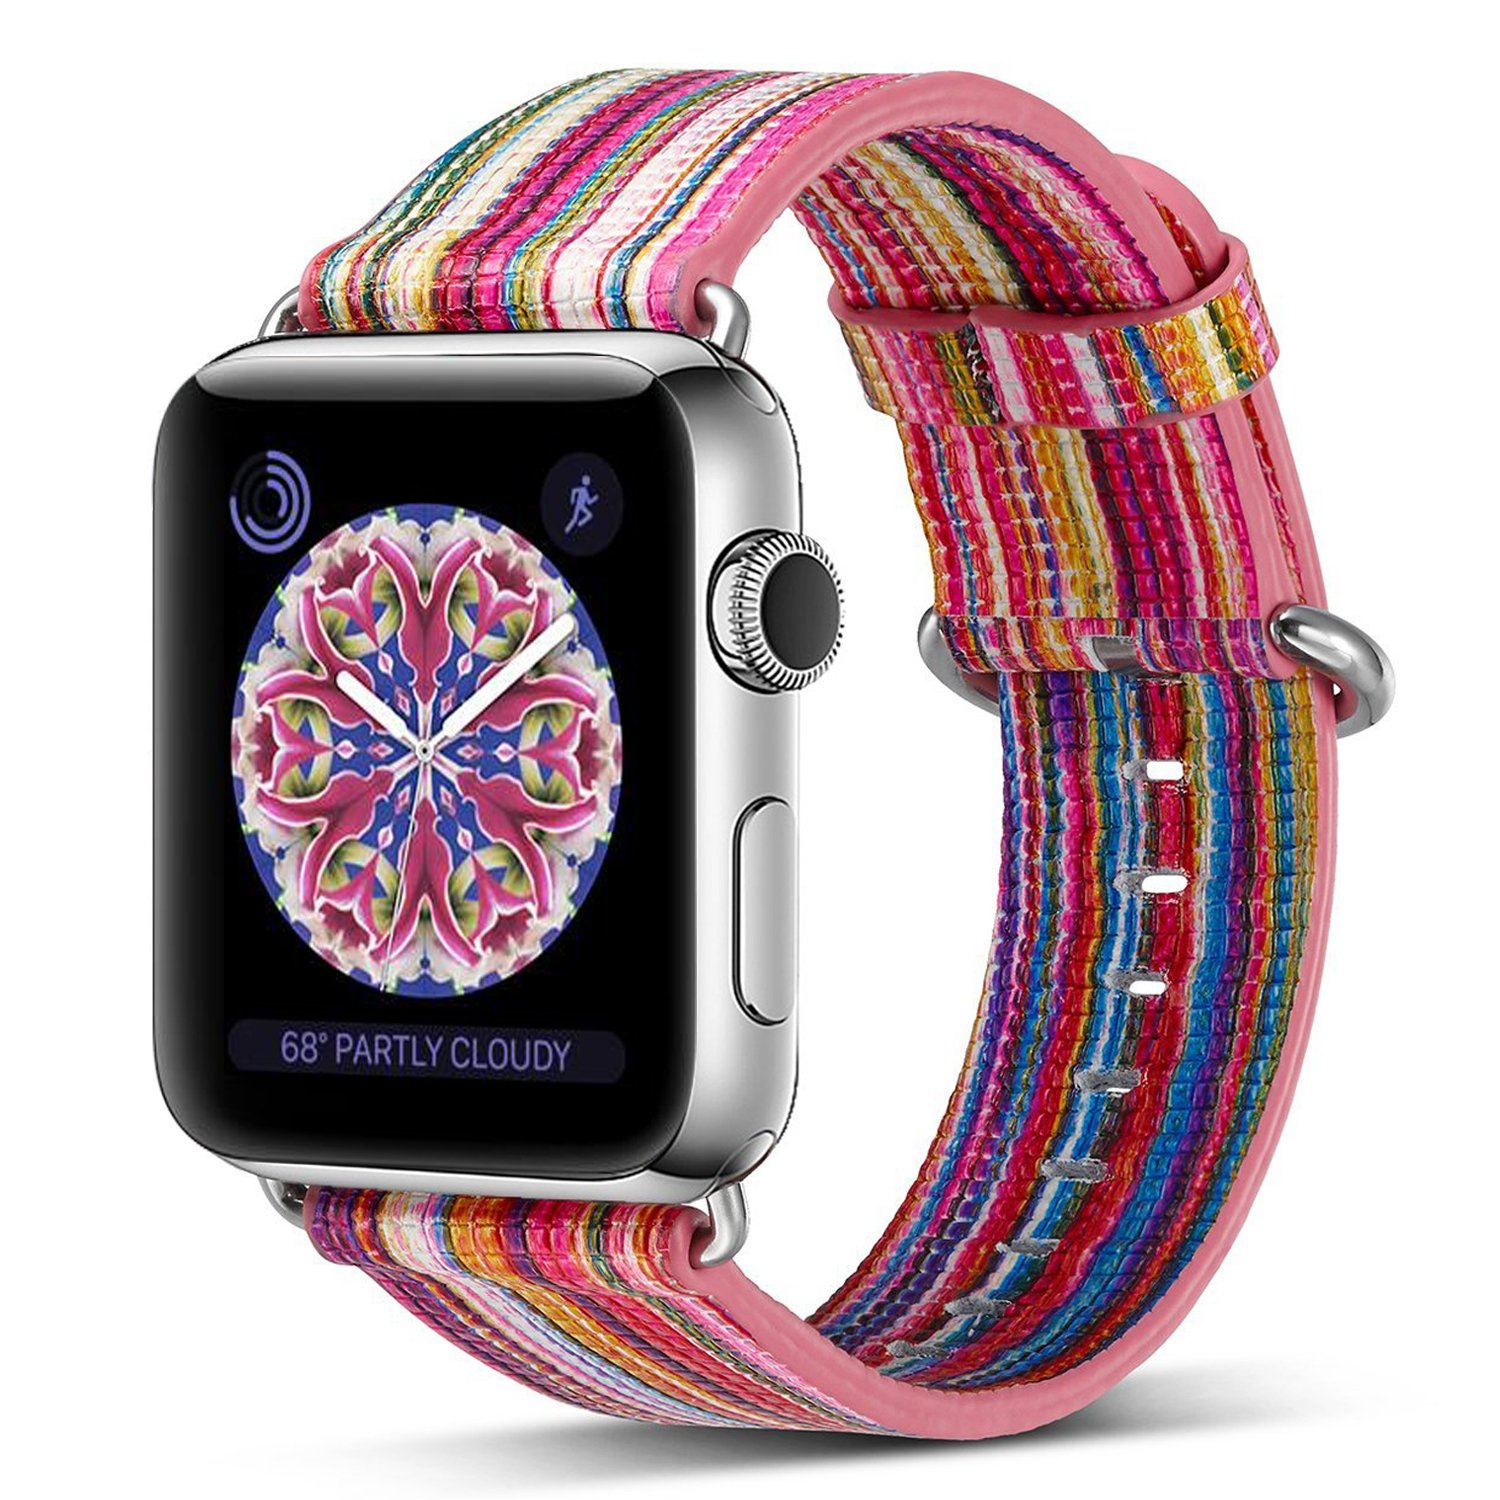 Compatible Apple Watch Band 38mm,Pierre Case Genuine Leather iwatch Strap Rainbow Replacement Bands Stainless Metal Clasp Compatible iWatch Series 3 Series 2 Series 1 Edition Women Men (Pink D)